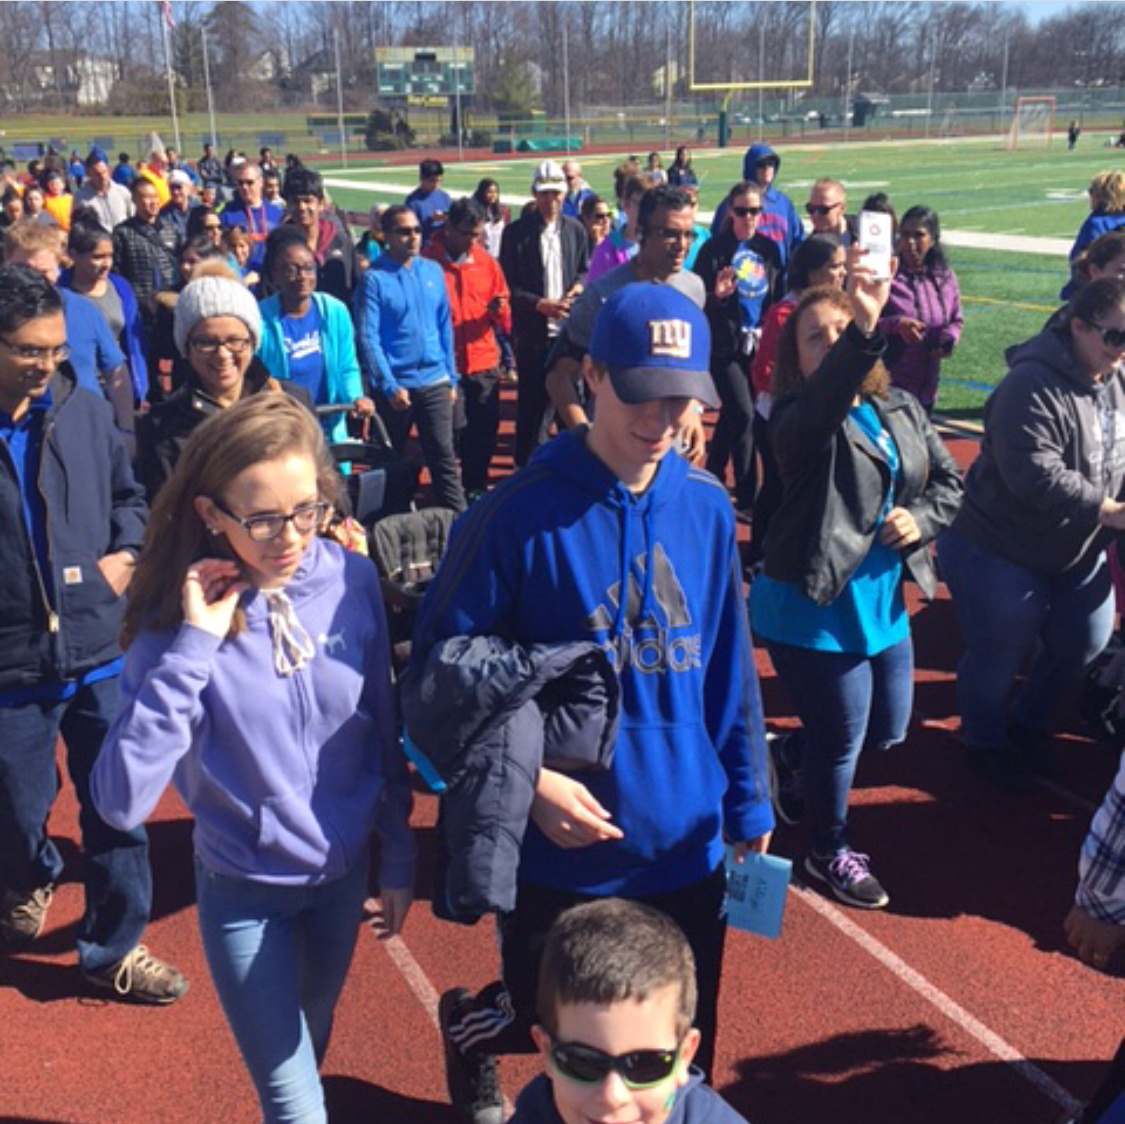 World Autism Day Walk Run Benefiting Autism New Jersey @Jp Stevens HS in Edison, NJ Photo